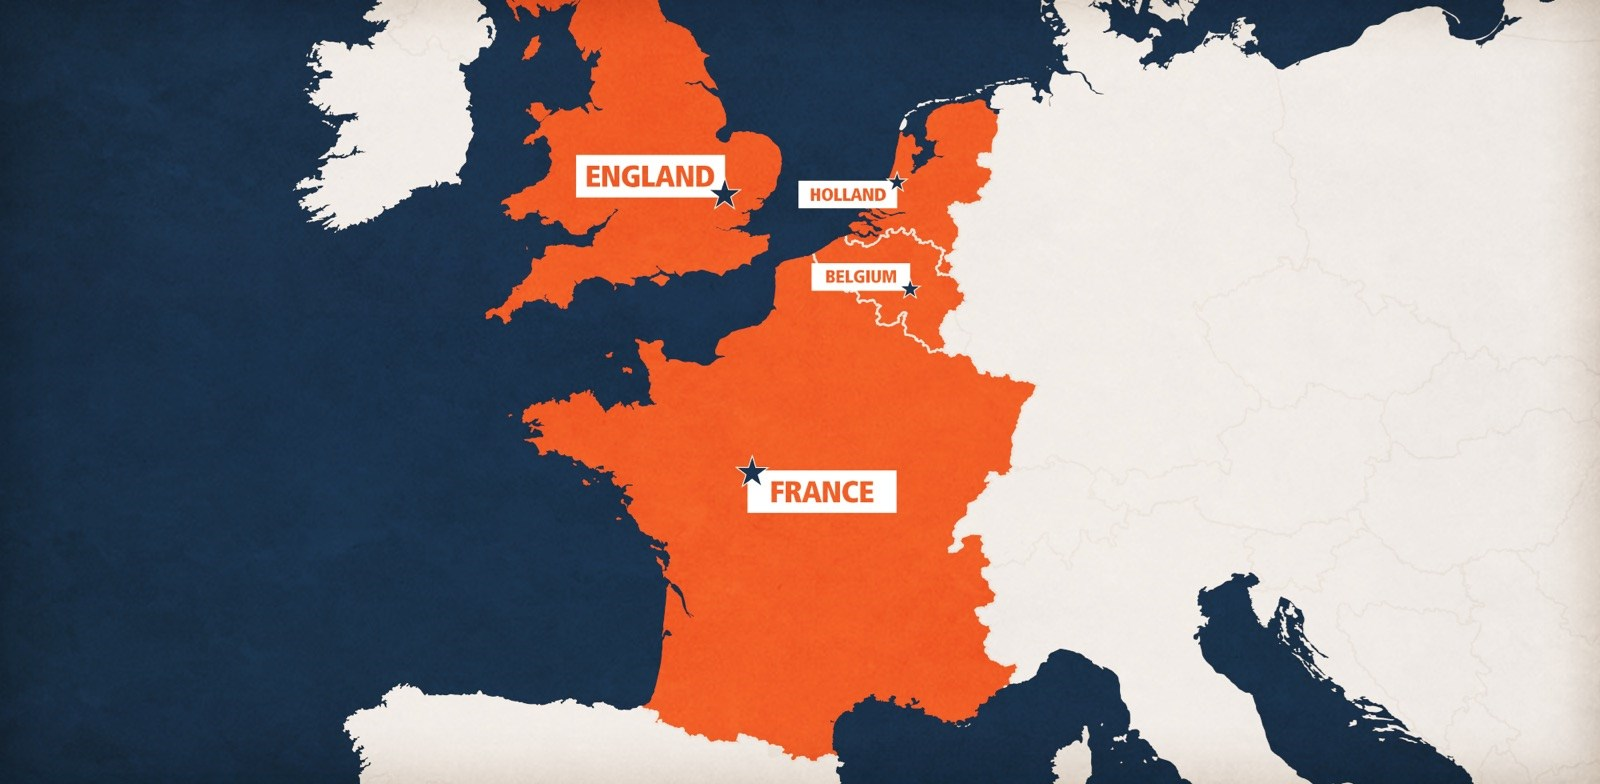 simple map of Europe with destination countries colored orange